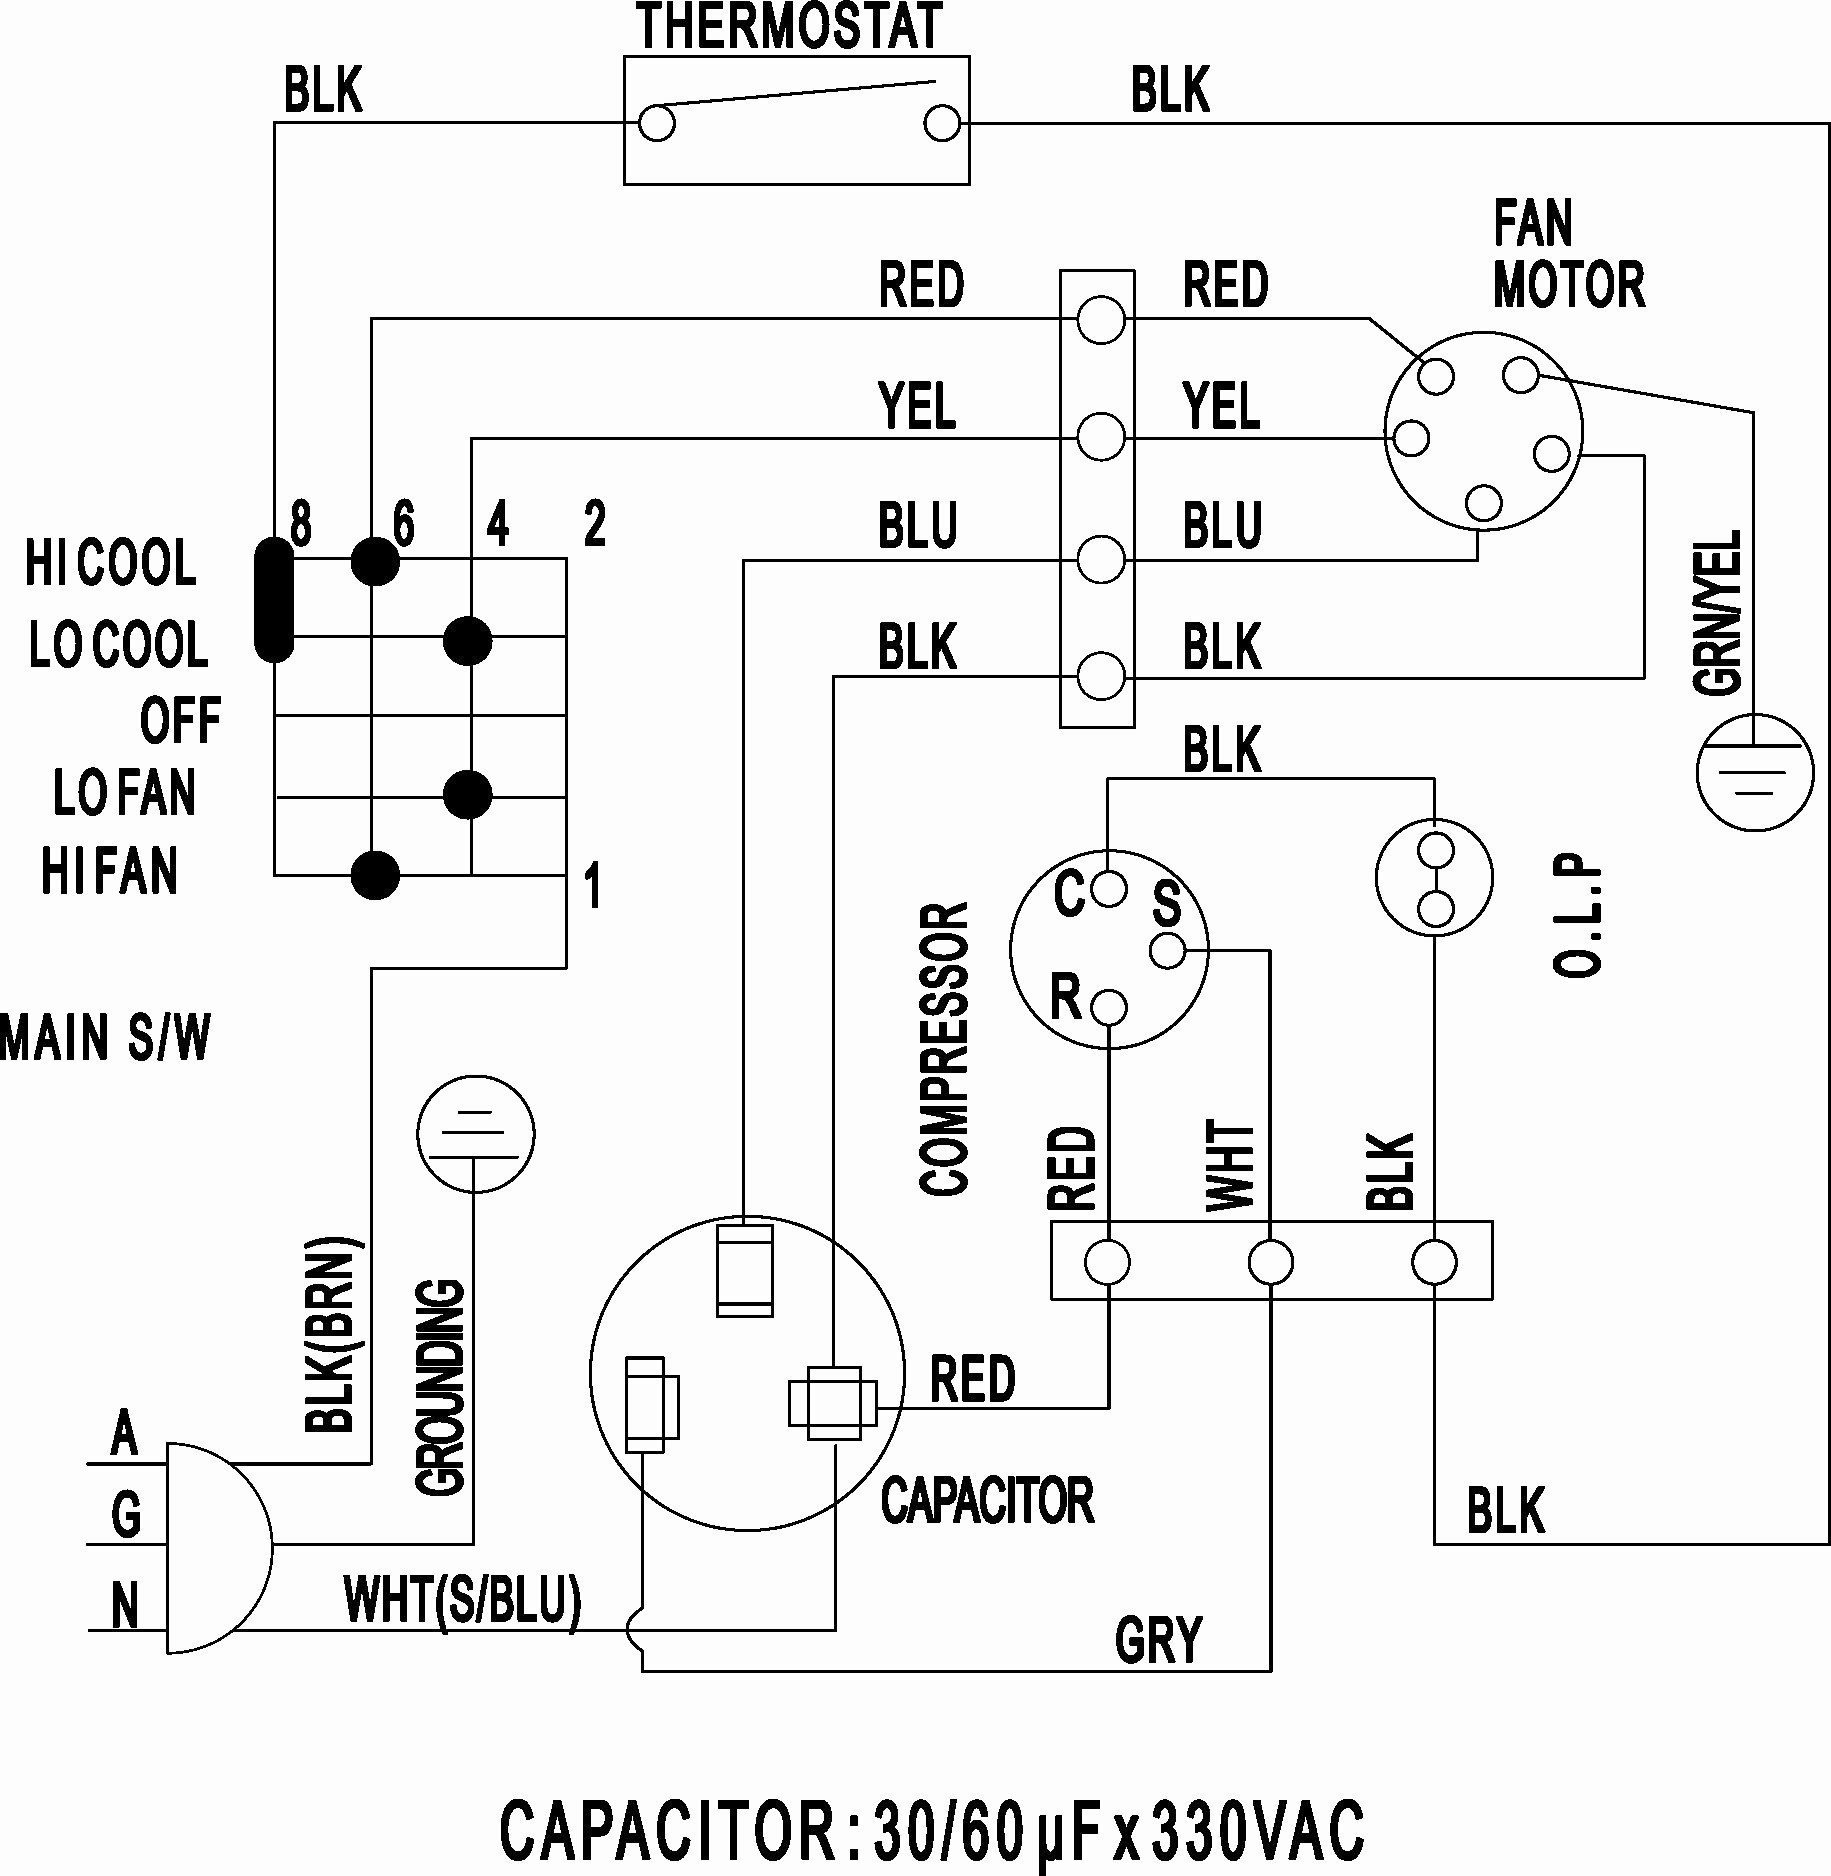 air conditioning condenser wiring diagrams air conditioning electrical wiring diagram split air conditioner wiring diagram sample